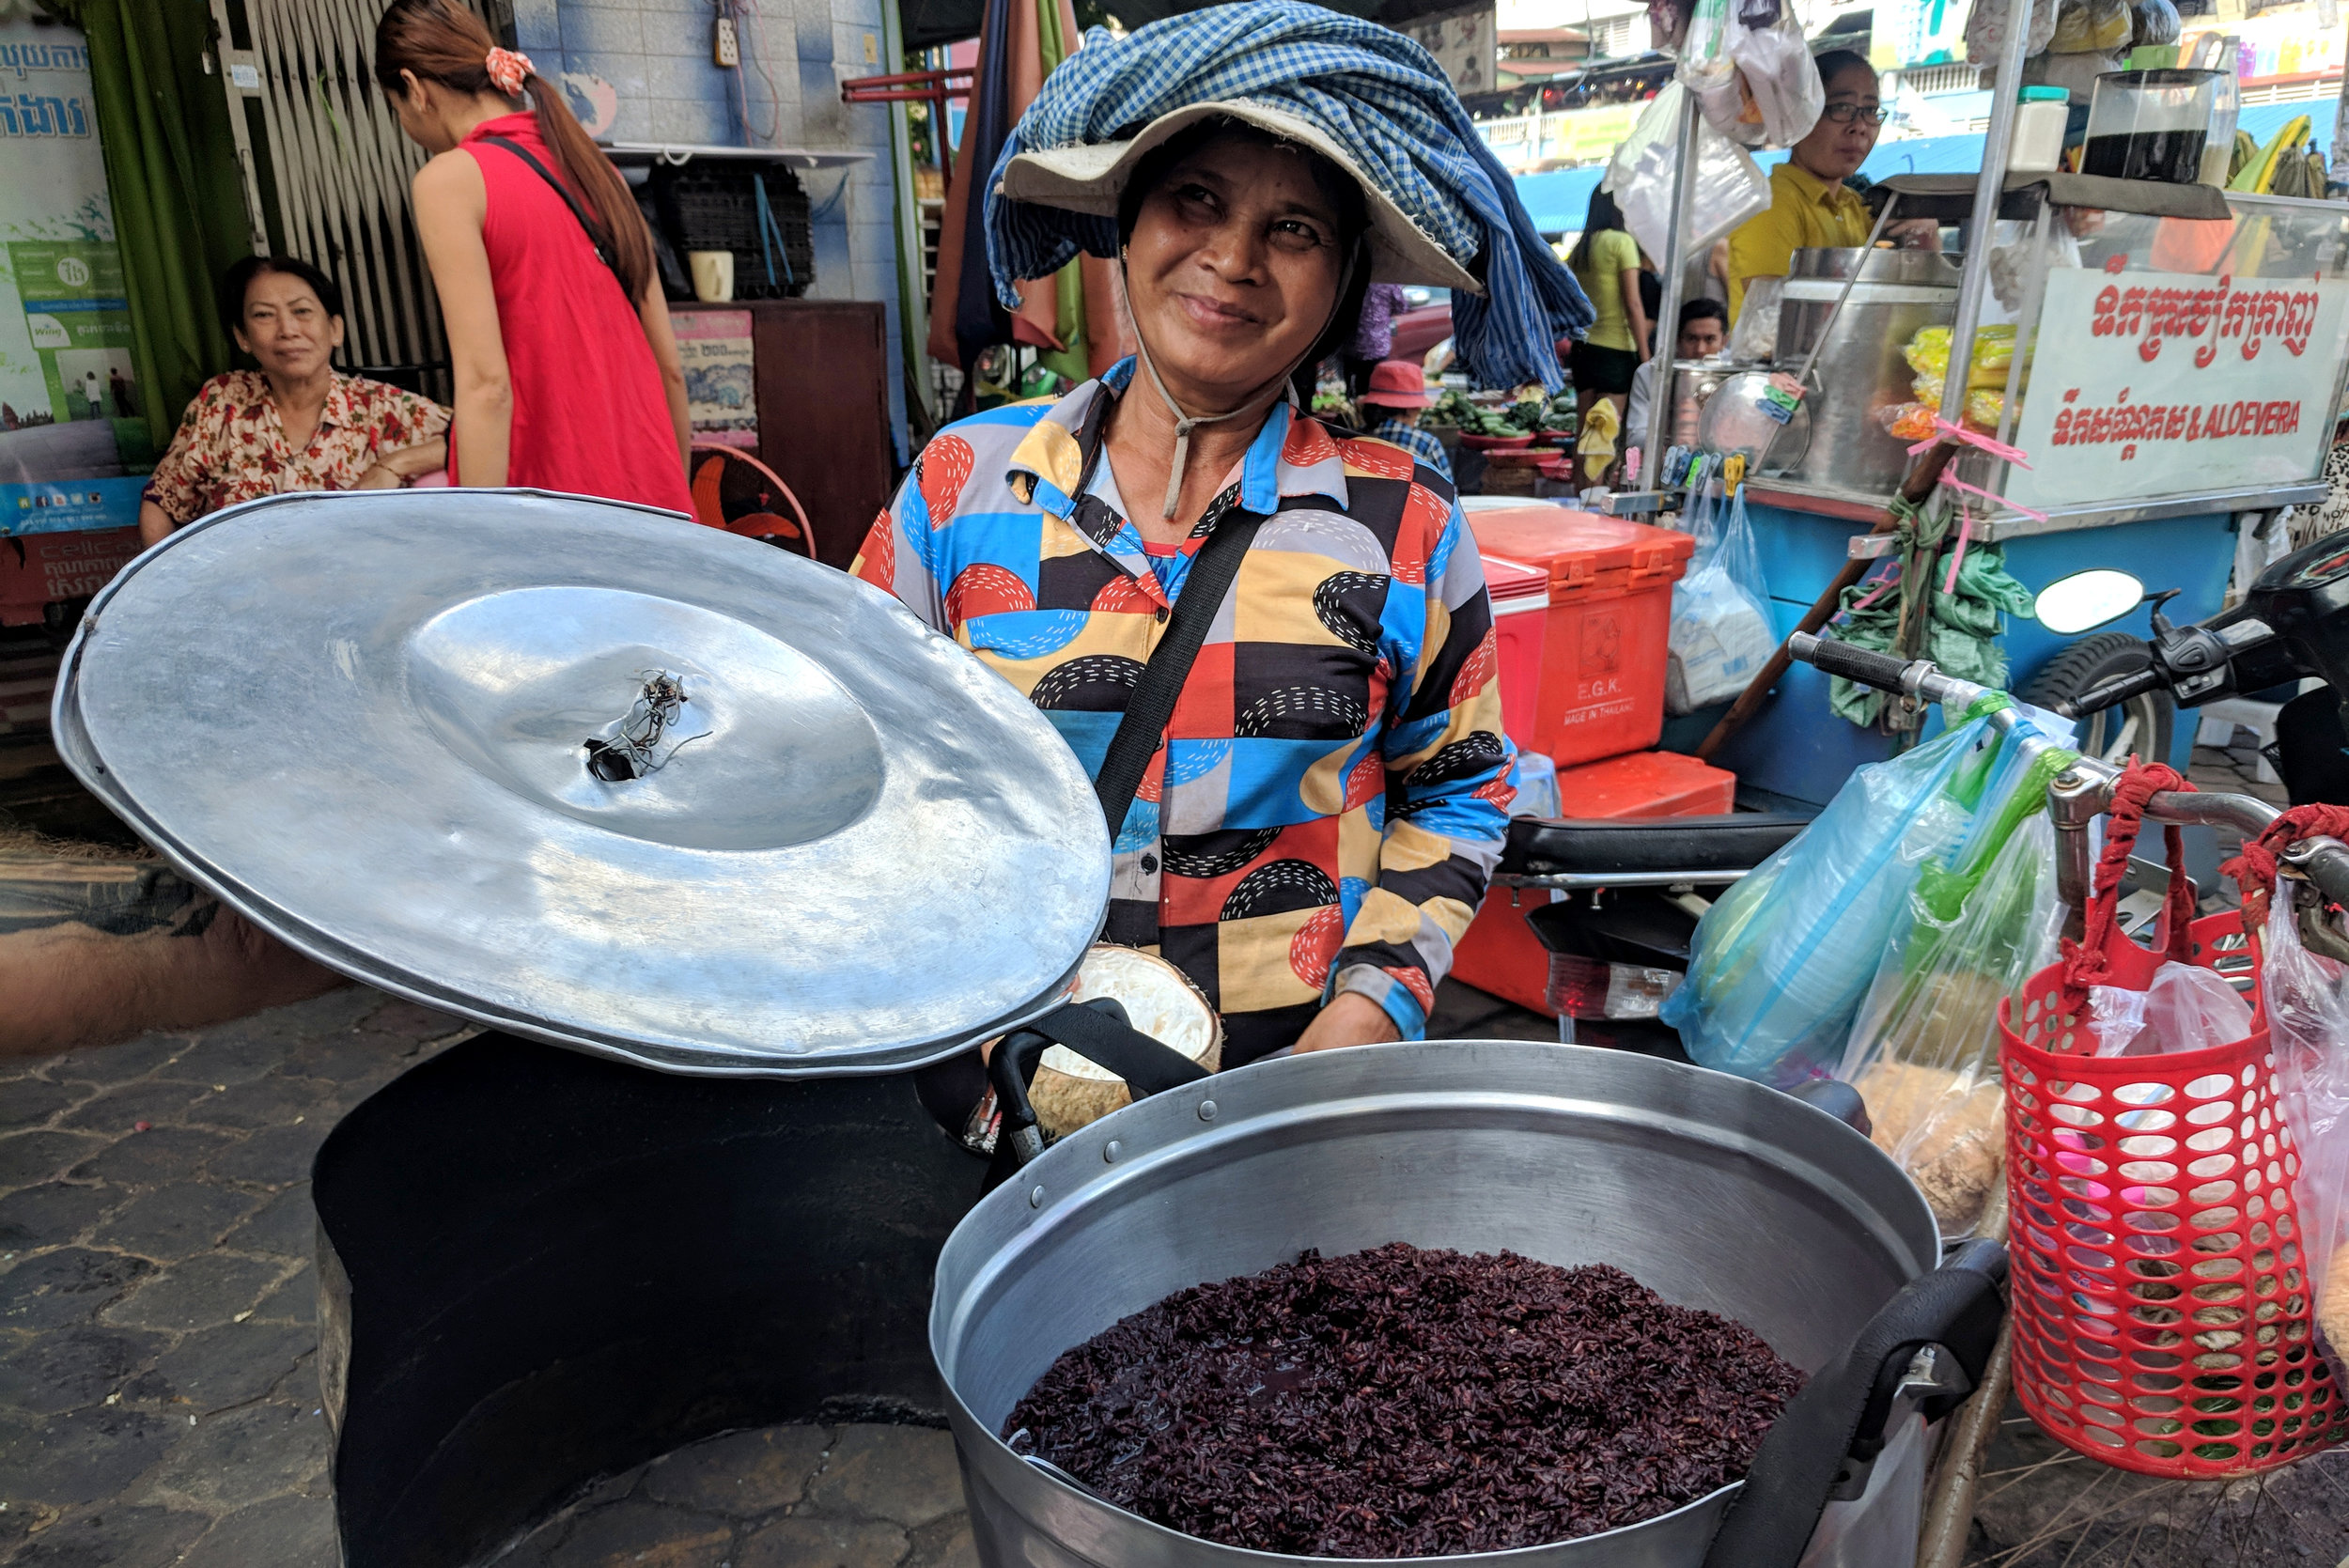 Phnom Penh Food Tours tries out market stalls a few times before bringing guests